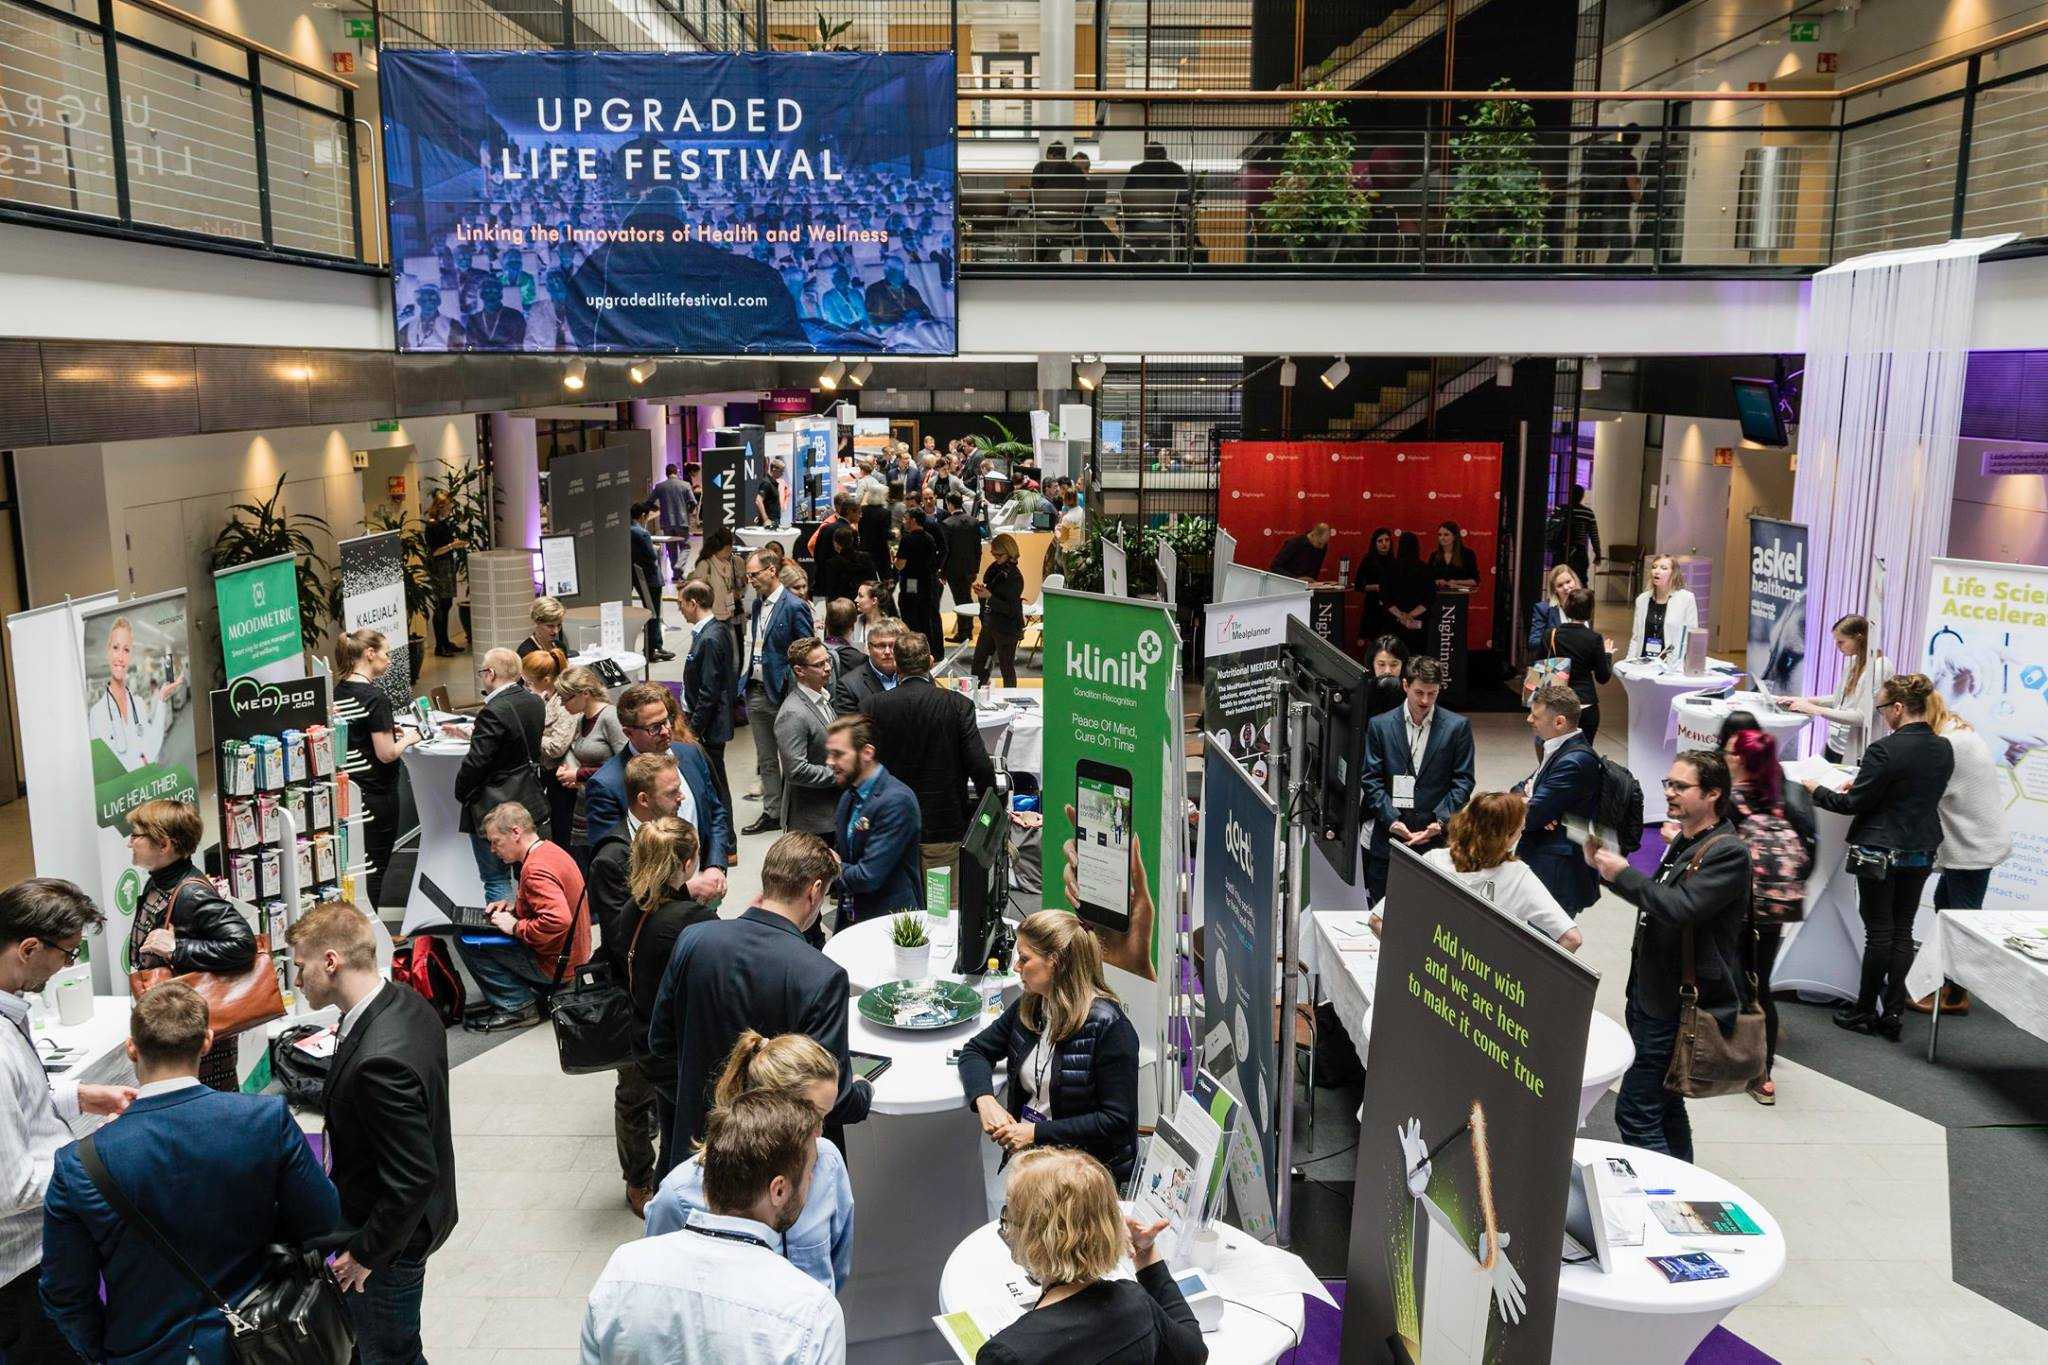 innokasmedical_fairs_events.jpg